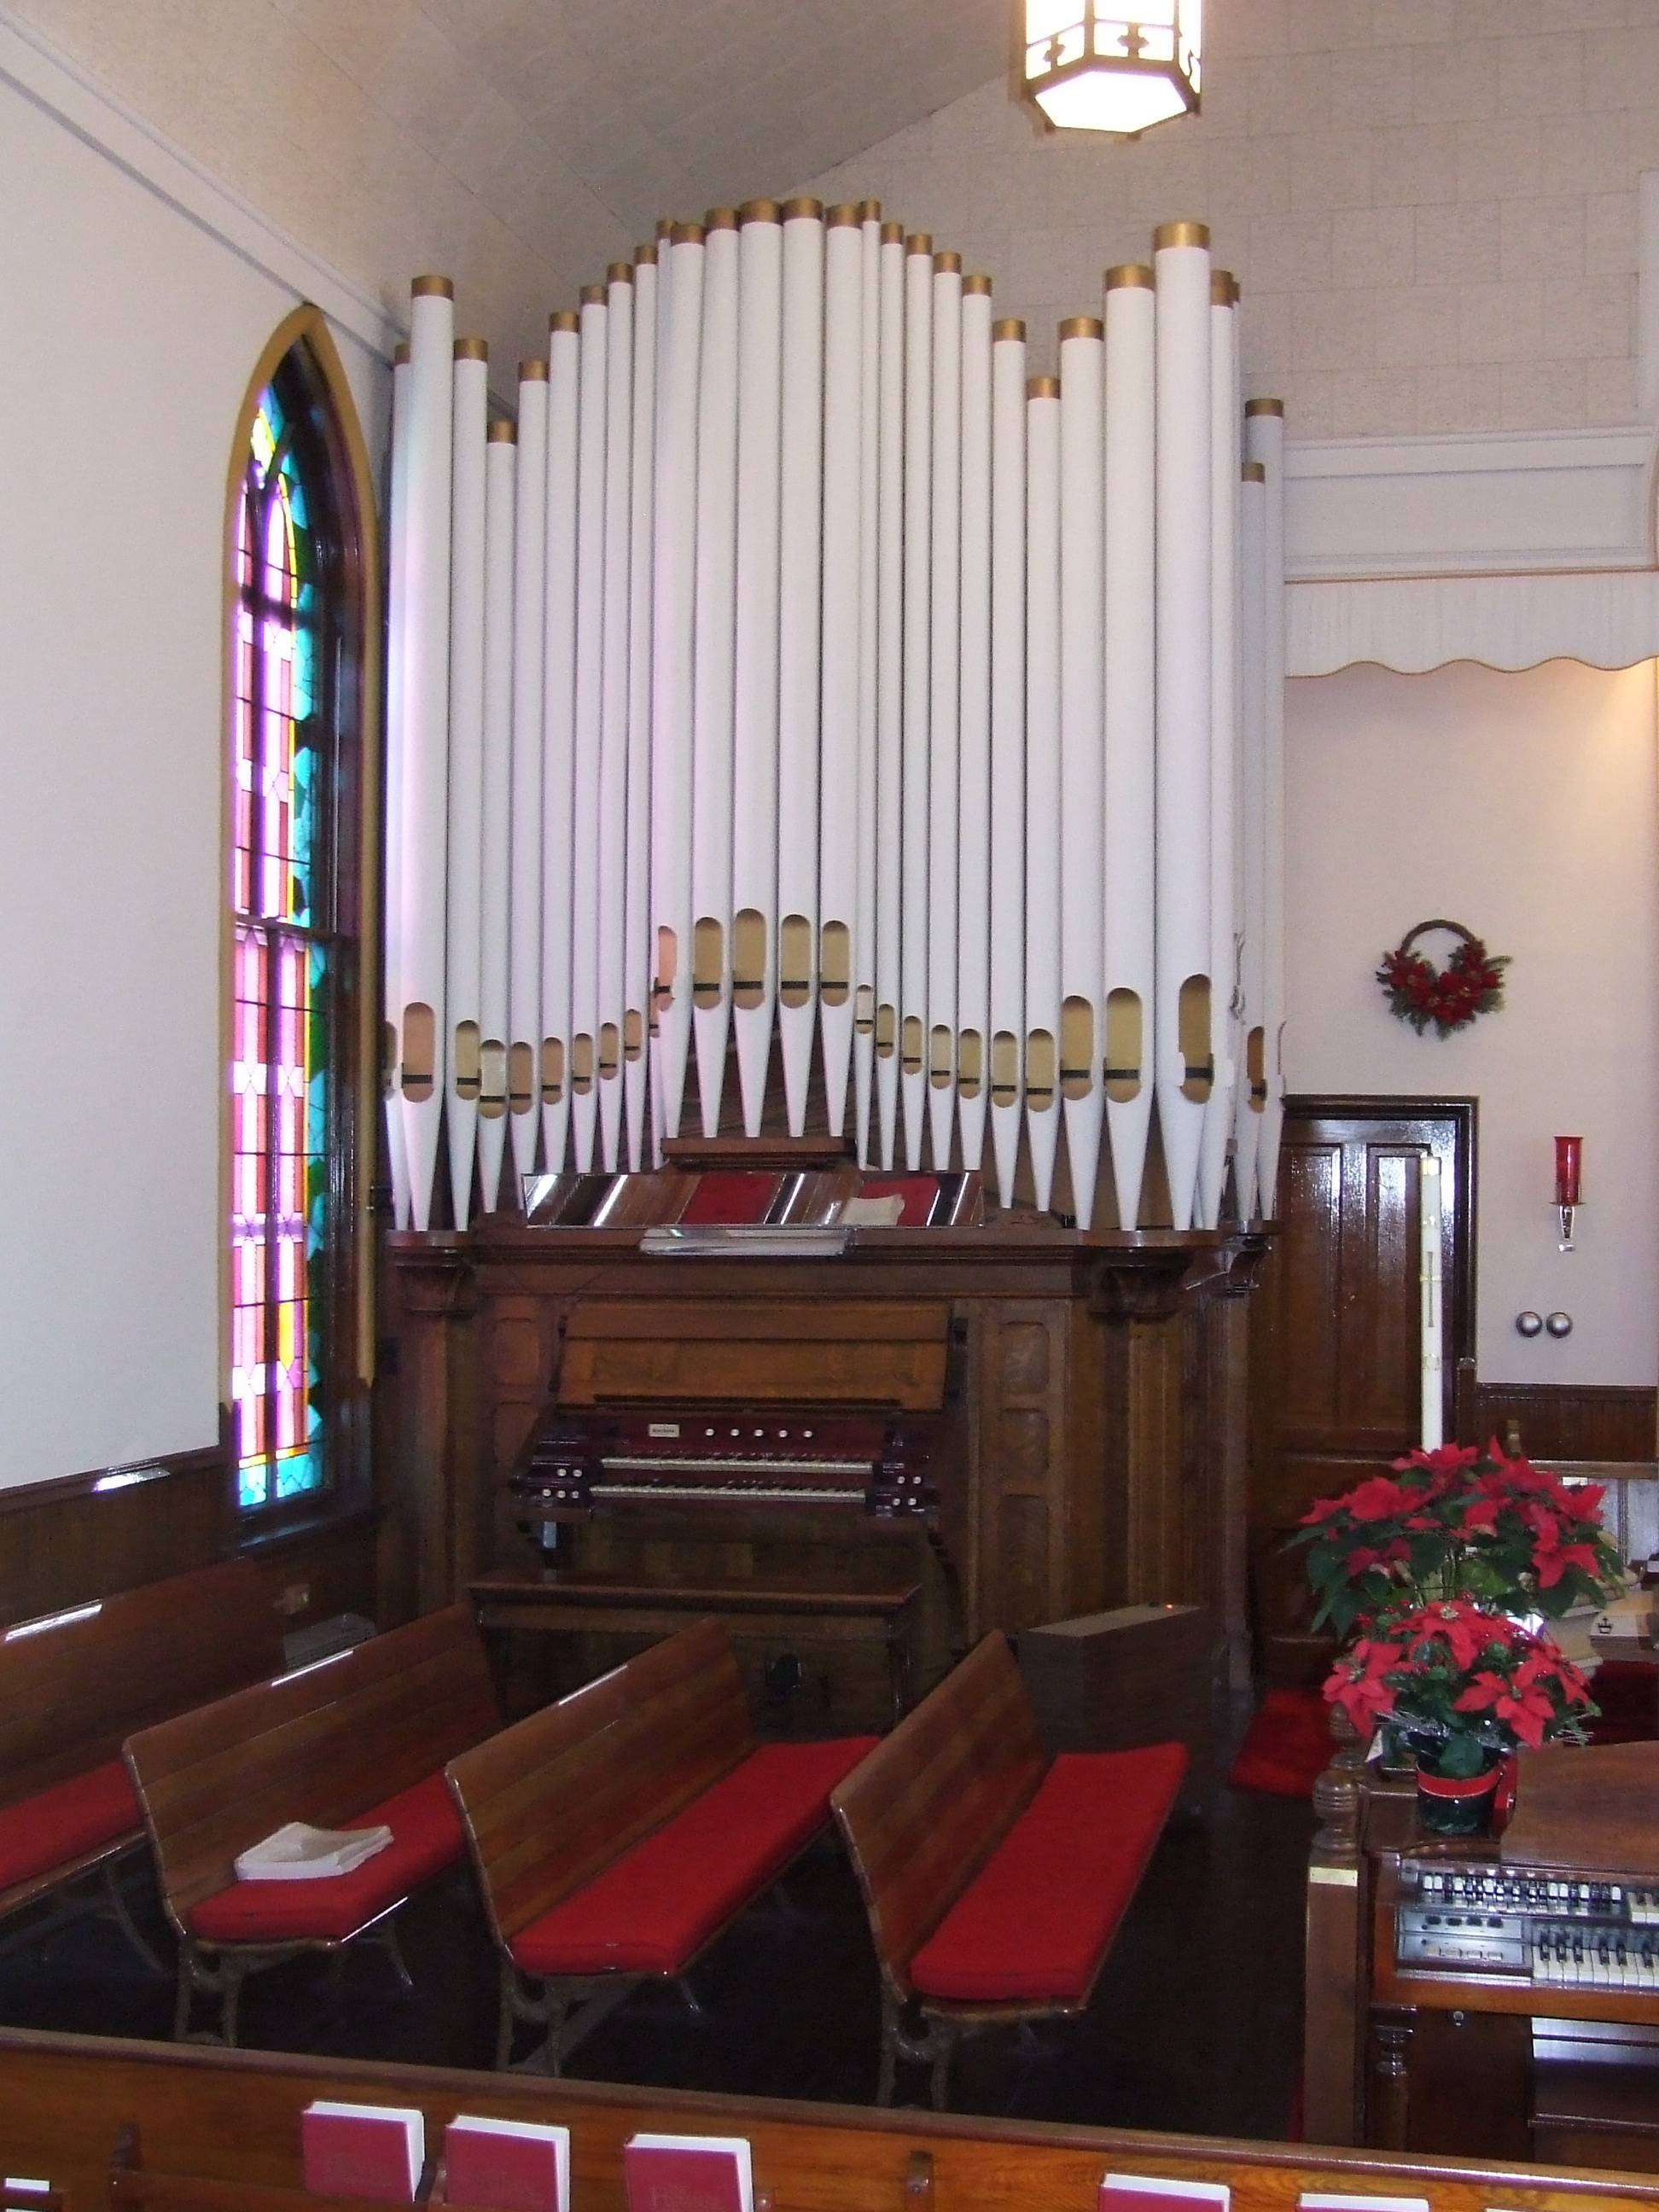 The historic 1911 Hinners Tracker Organ at Zion United Church of Christ, Carpentersville